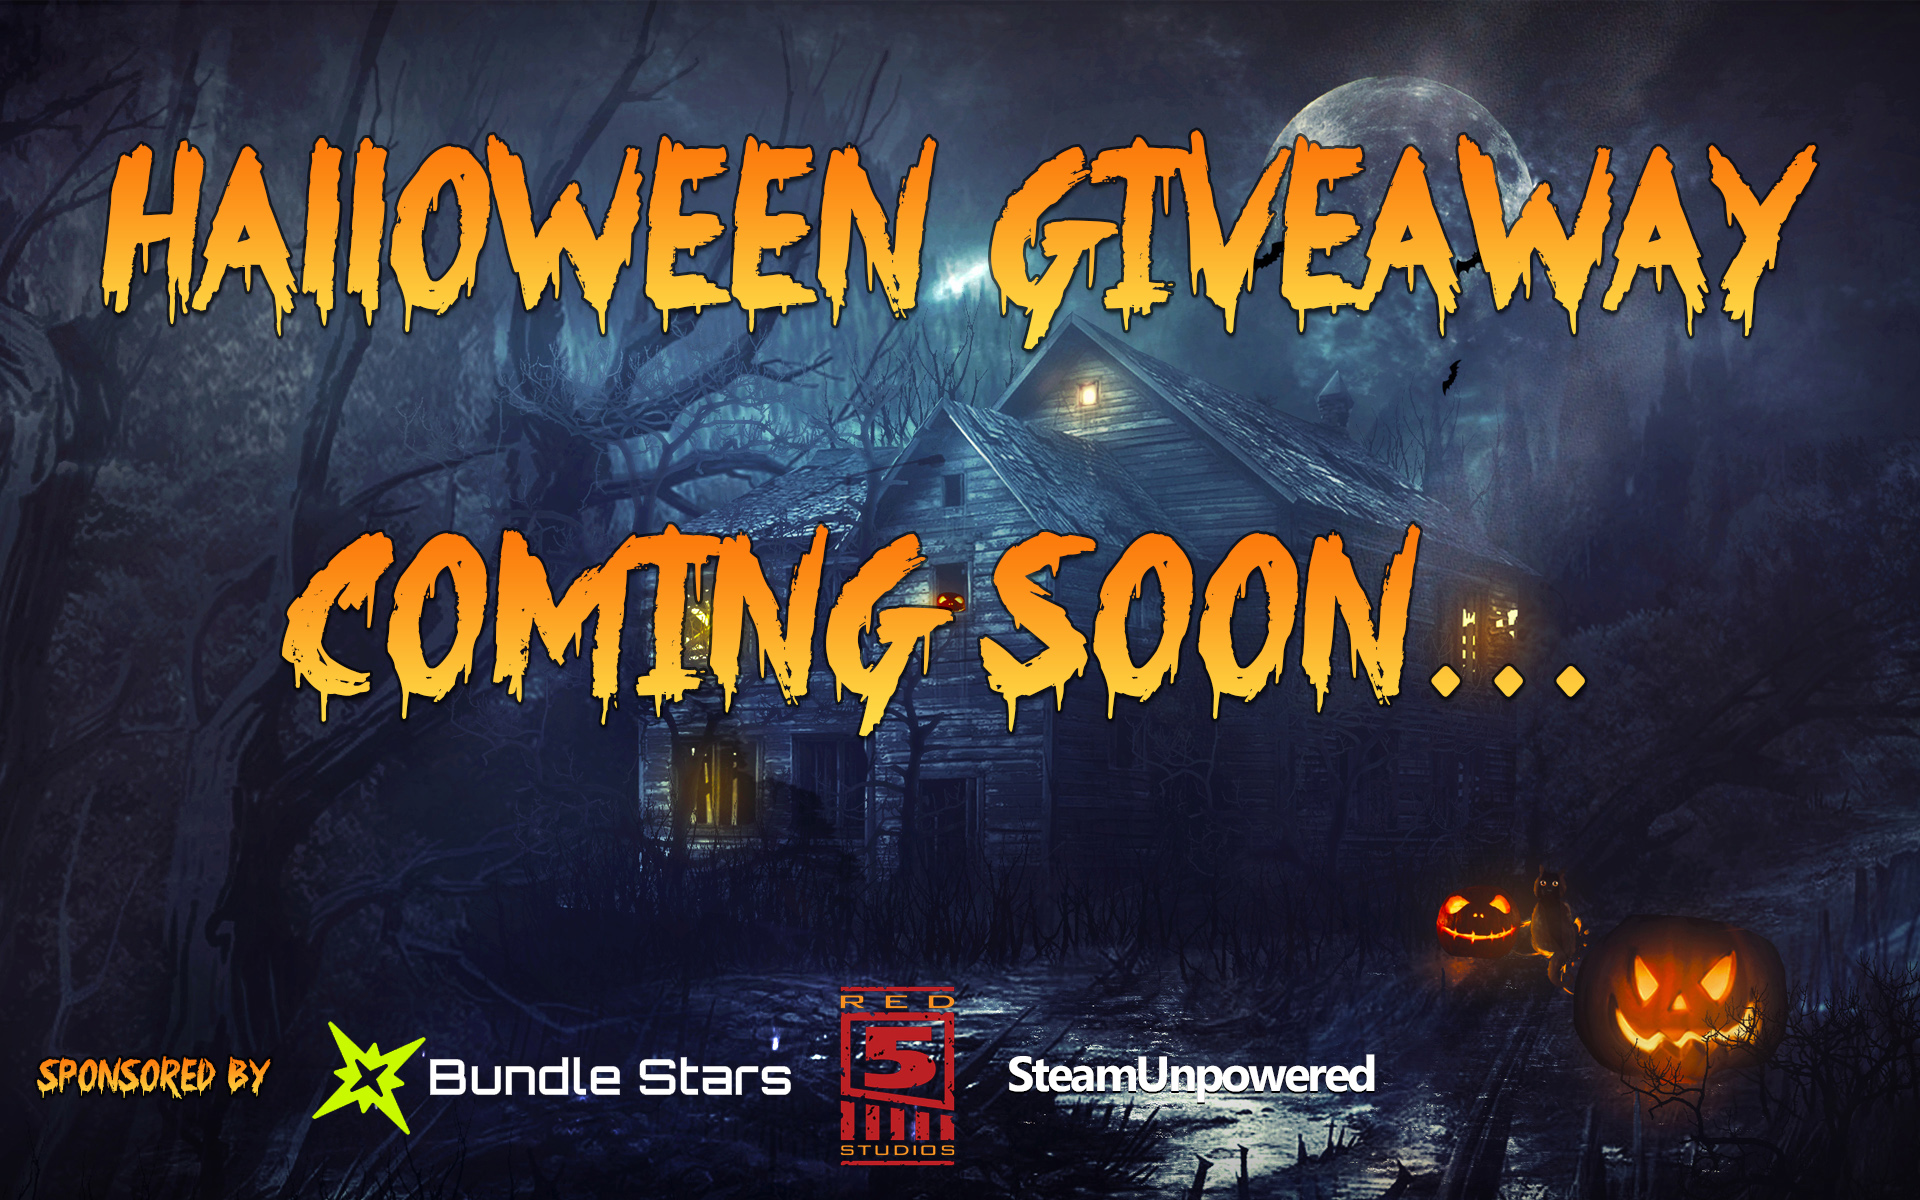 Halloween Giveaway Coming Soon... | Steam Unpowered